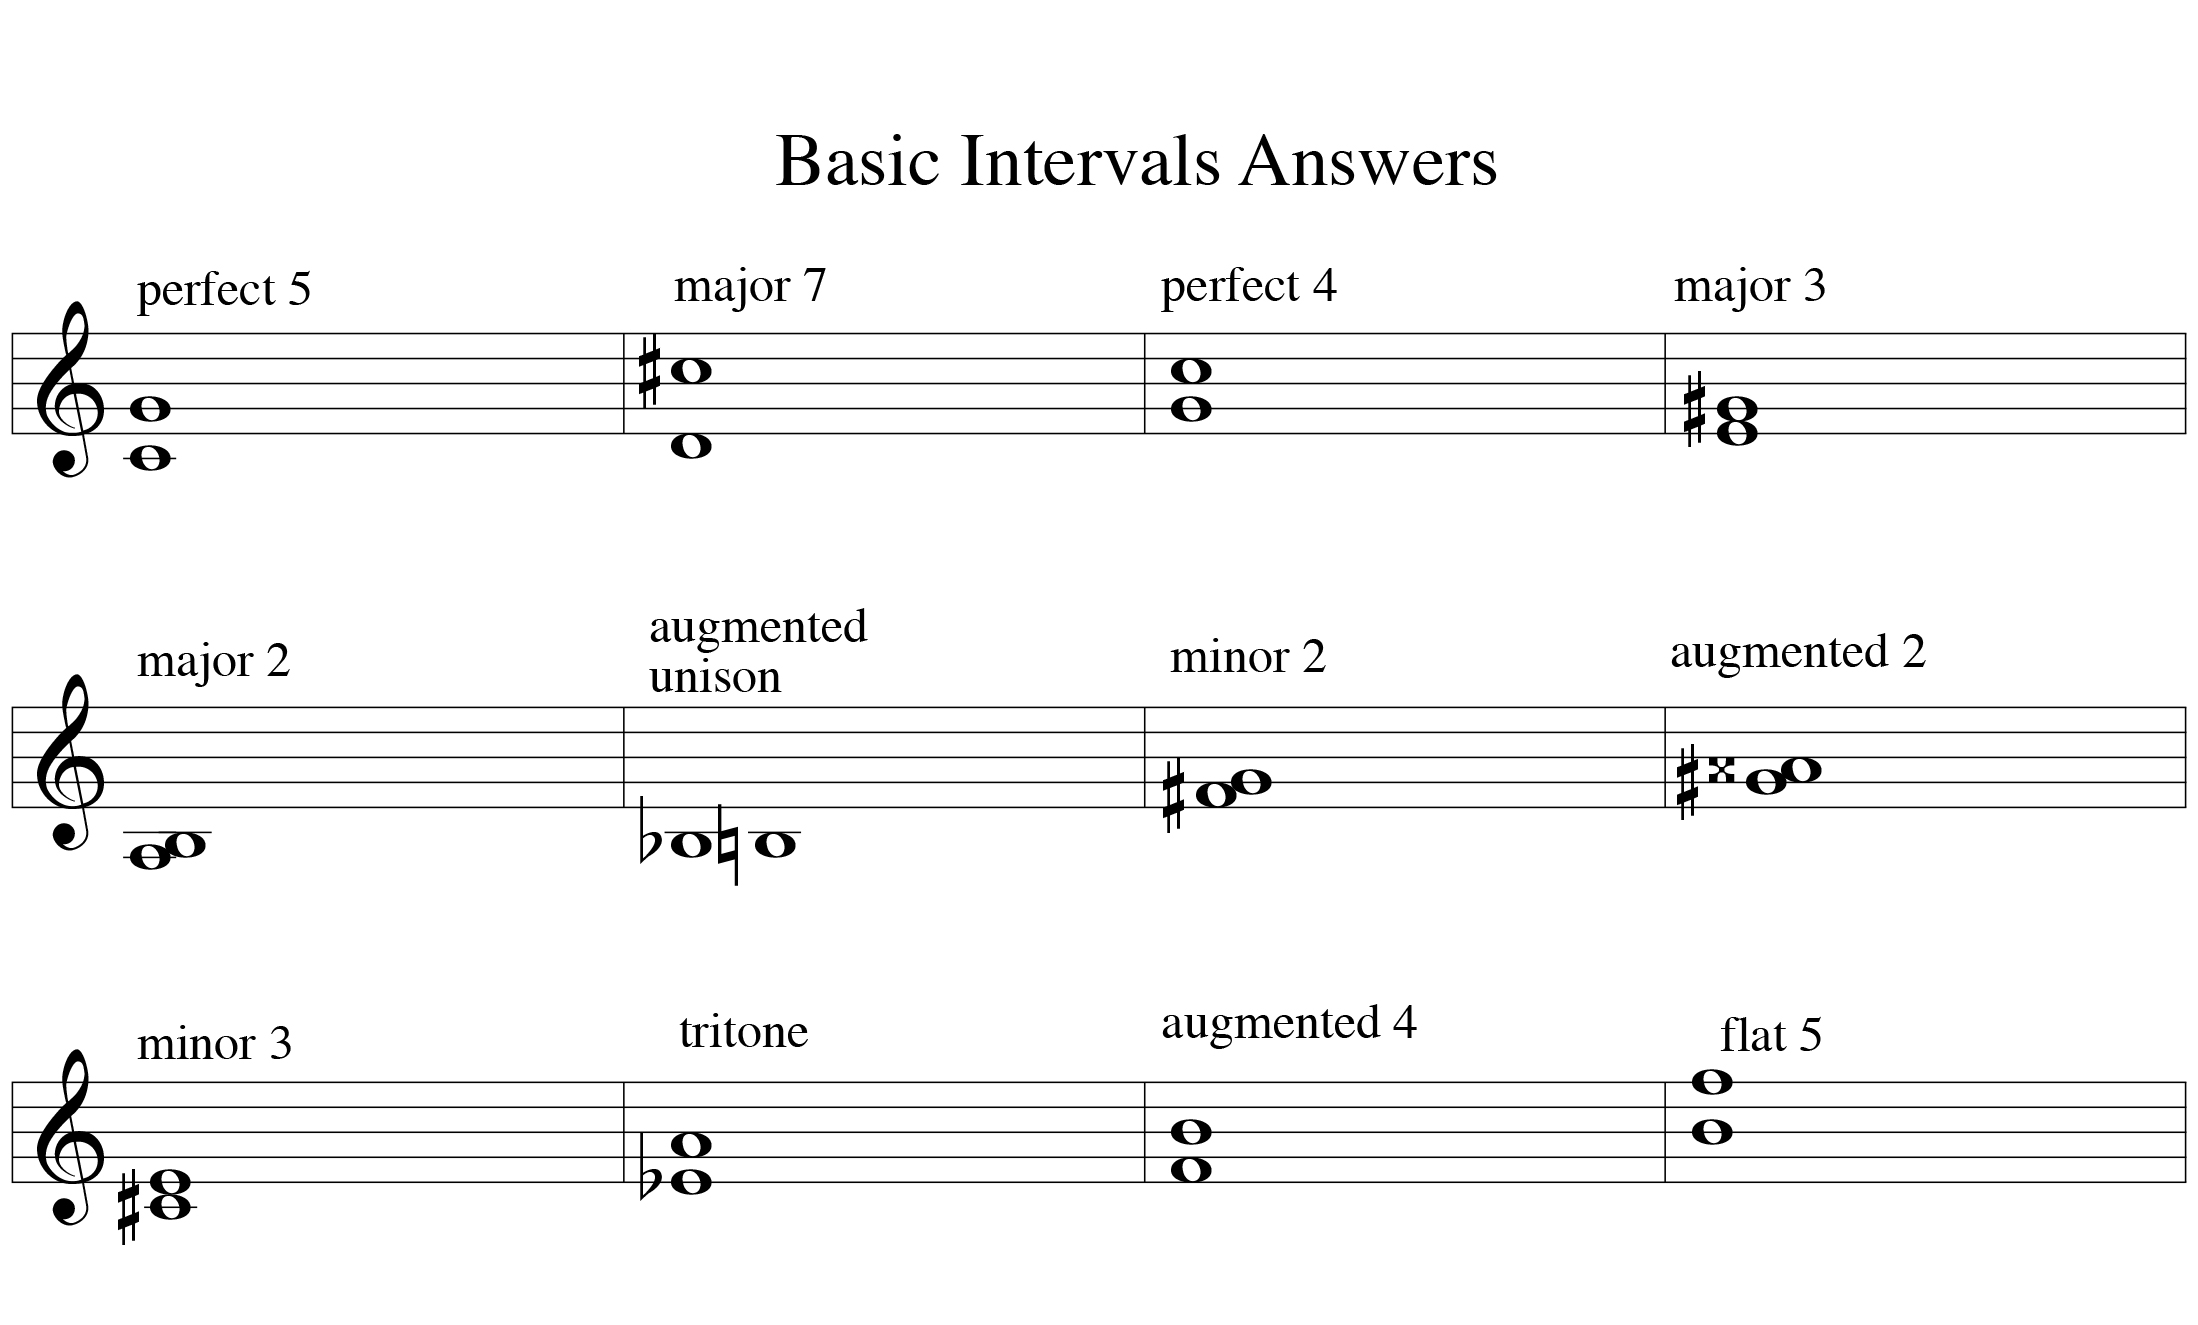 Music-Theory-Workbook-for-all-instruments-by-bruce-arnold-for-muse-eek.com-basic-interval-exercise-Crop-Answers